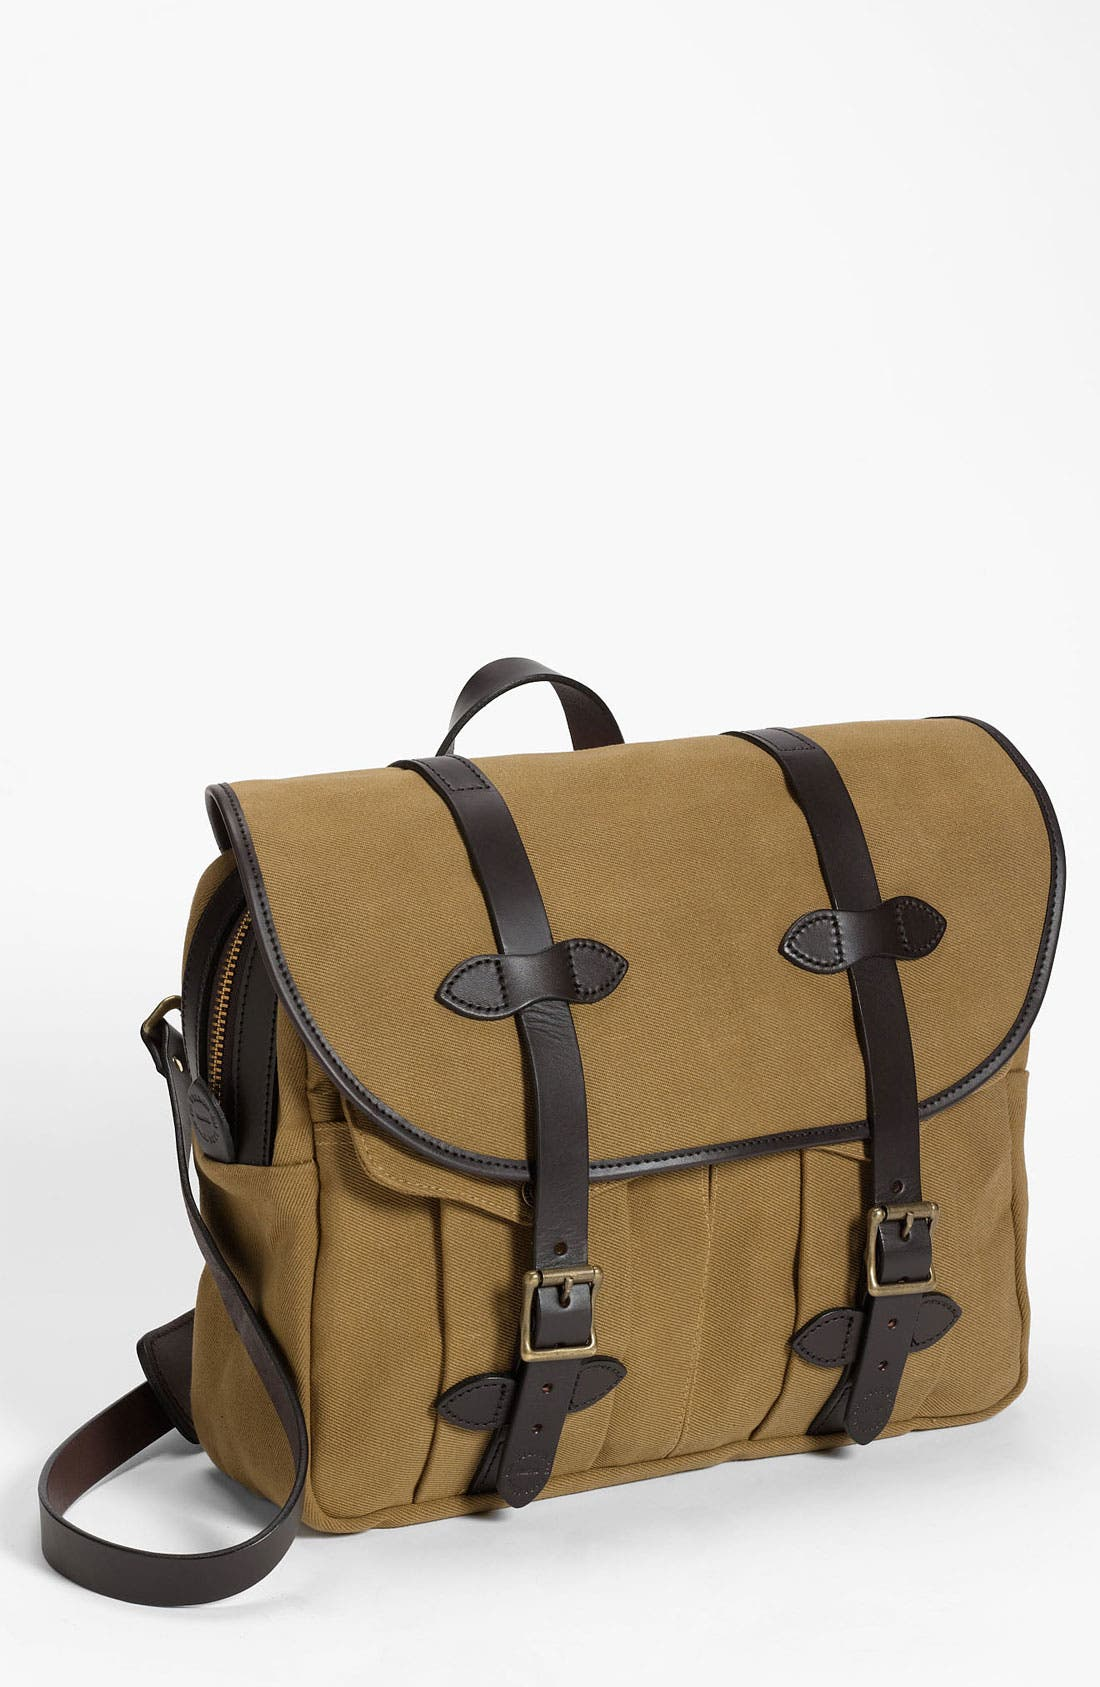 Main Image - Filson Small Carry-On Bag (16 Inch)